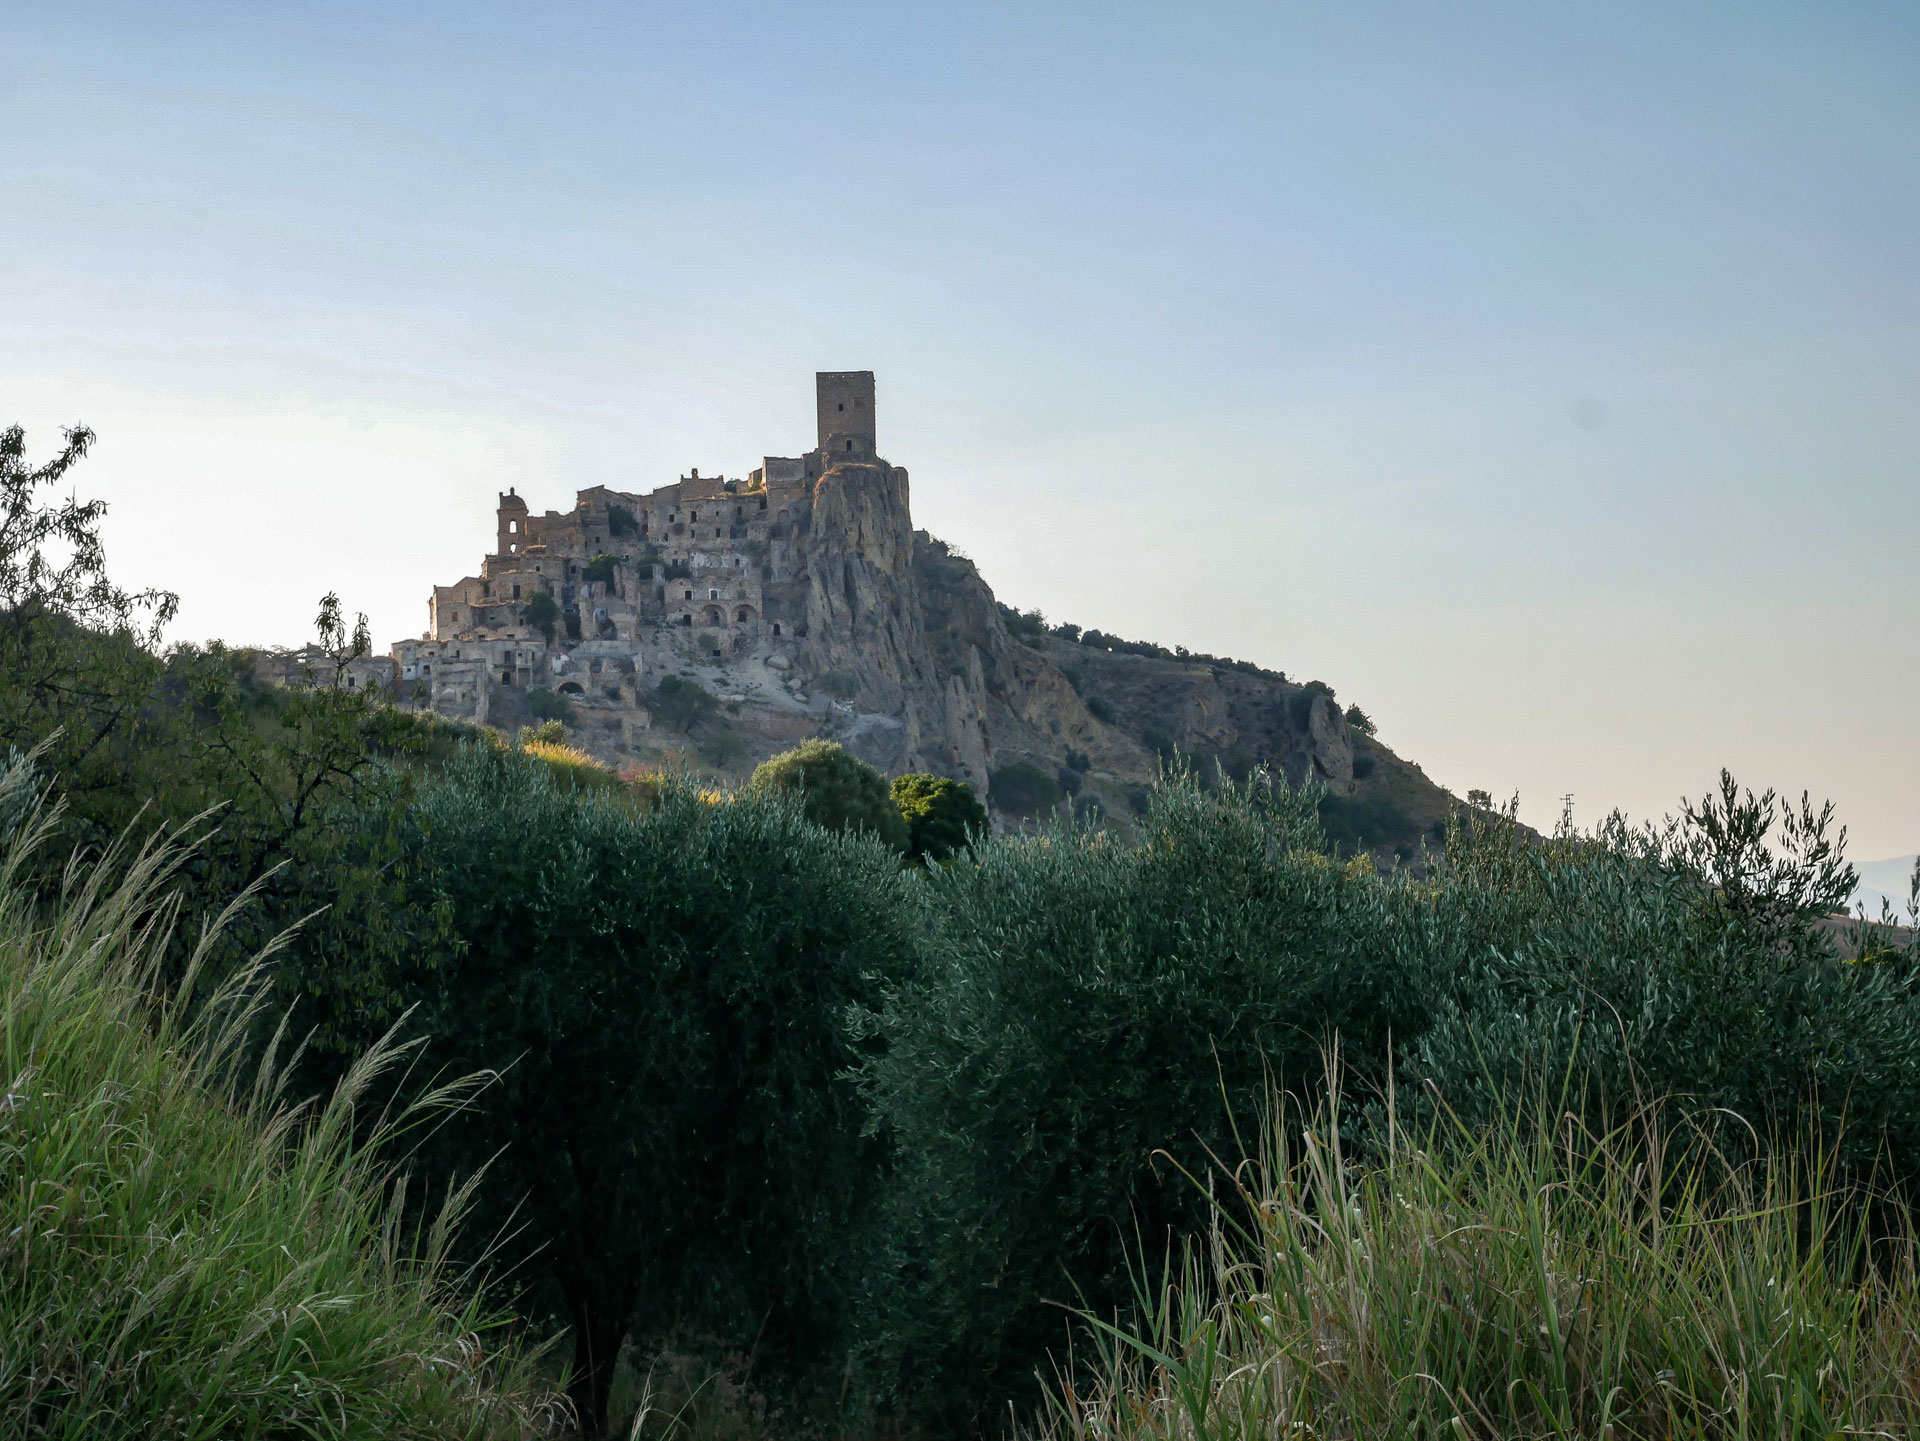 Another view of Craco, the ghost town